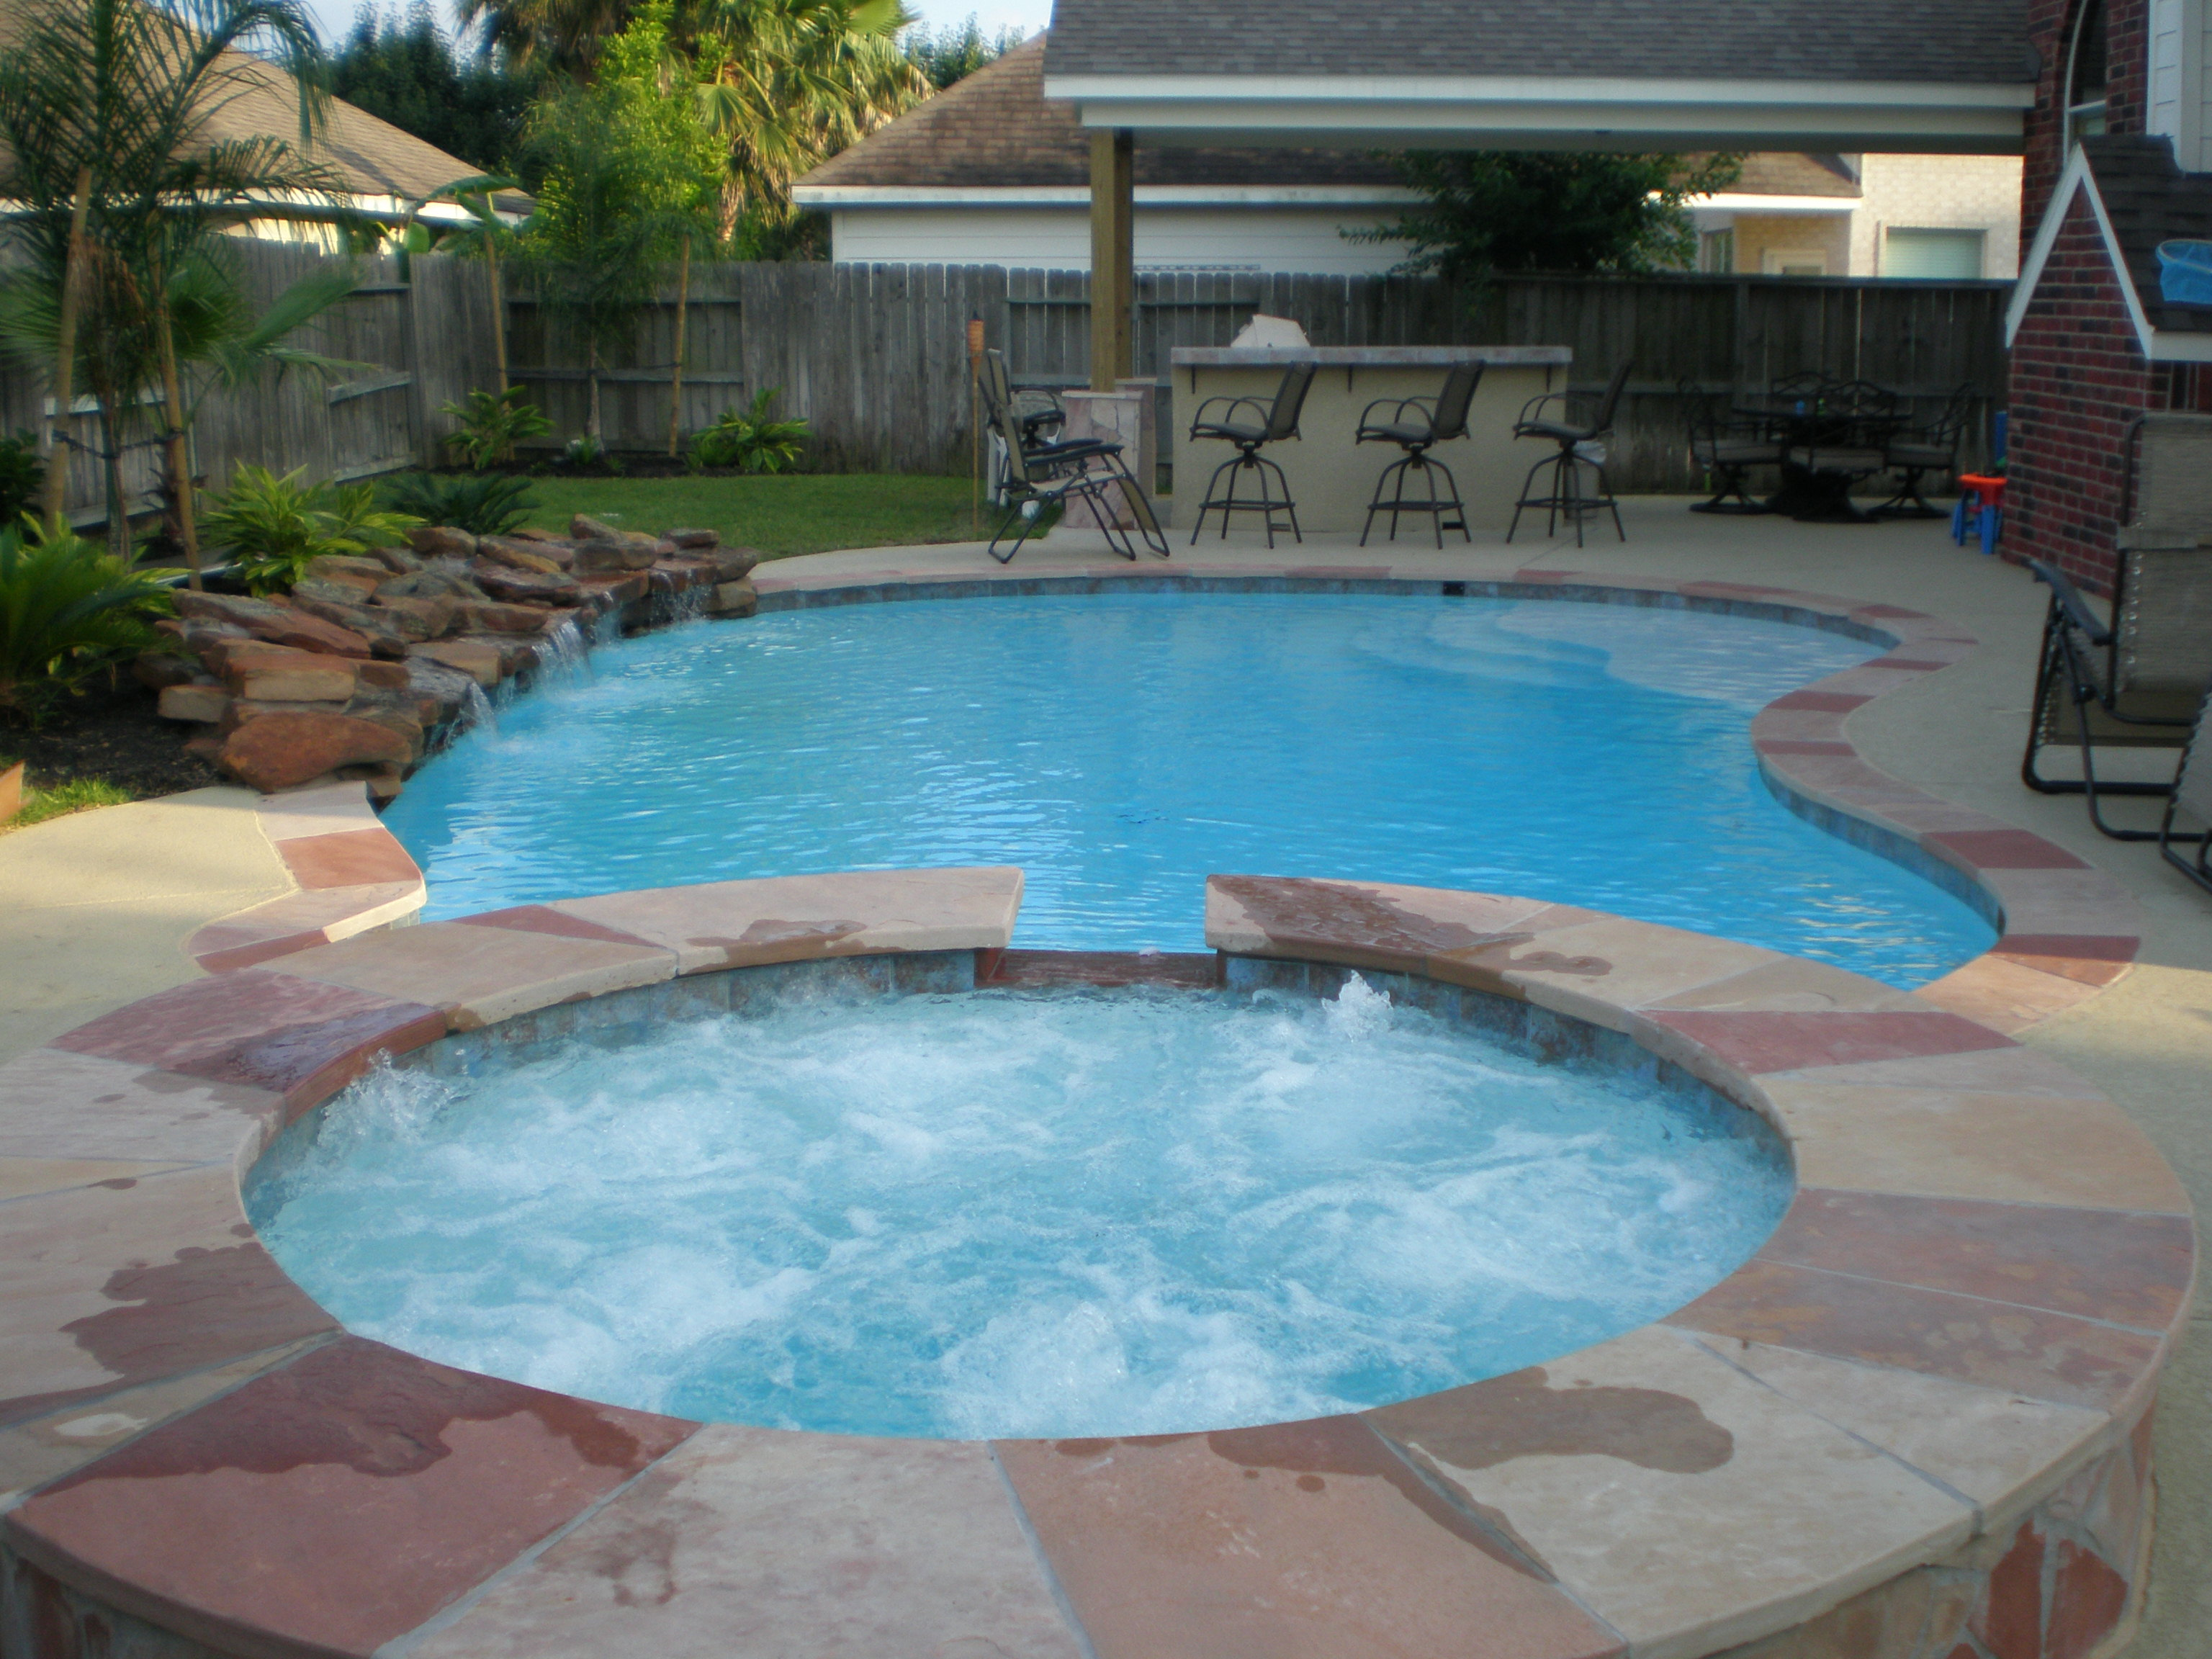 Jacuzzi Pool Gspa Huge Landscape Idea Pools And Landscaping Ideas Drought